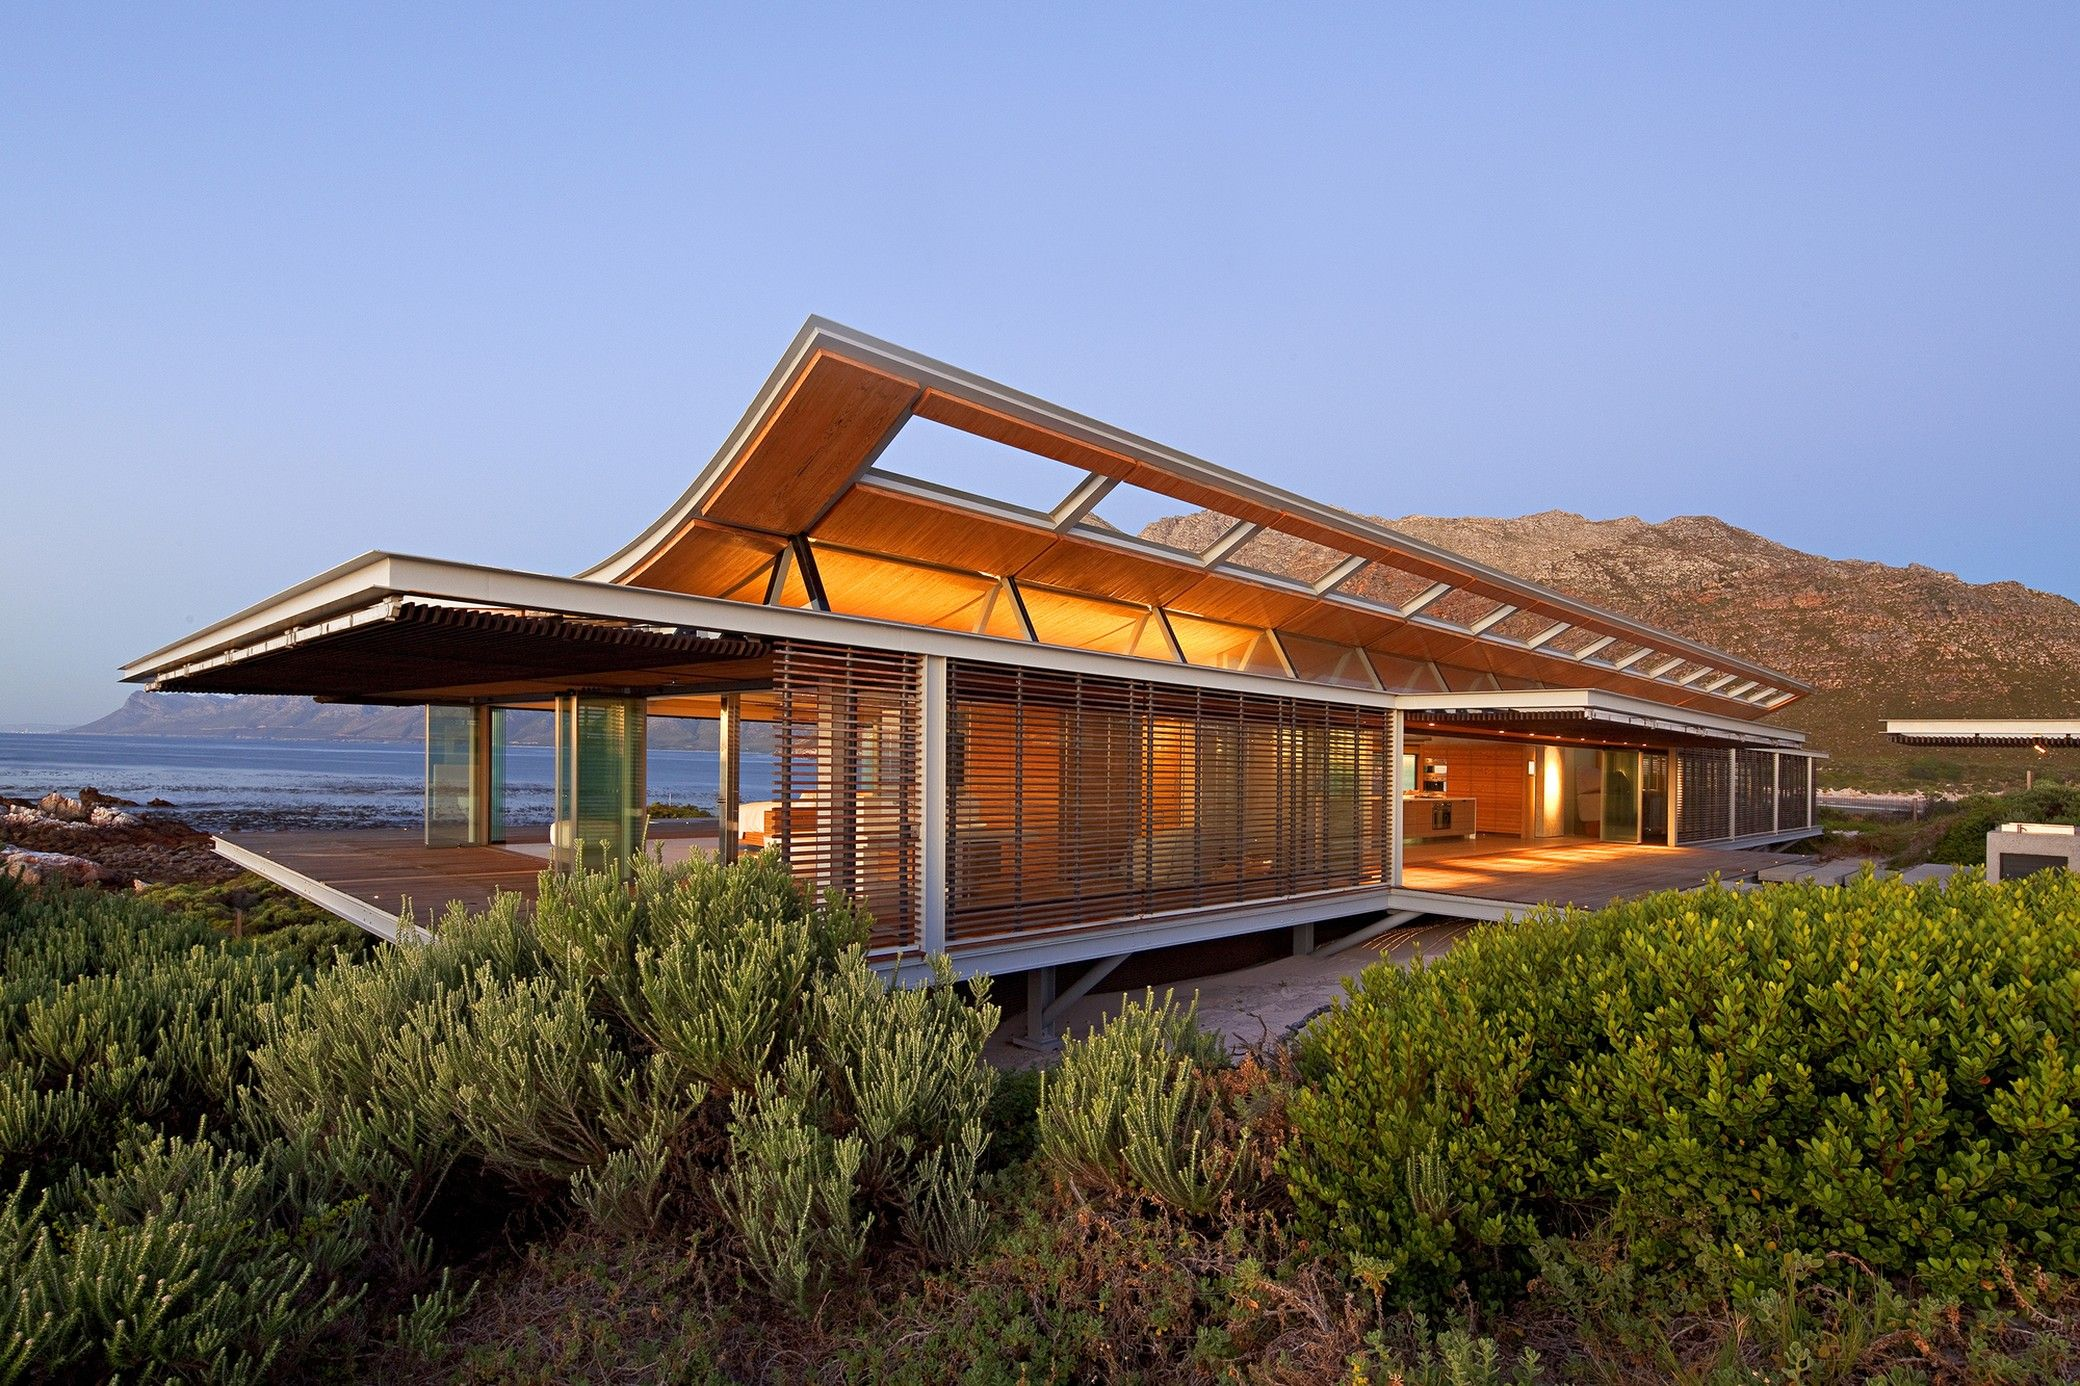 Rooiels Beach House - Elphick Proome Architects #Beachhouse #Capetown #Context